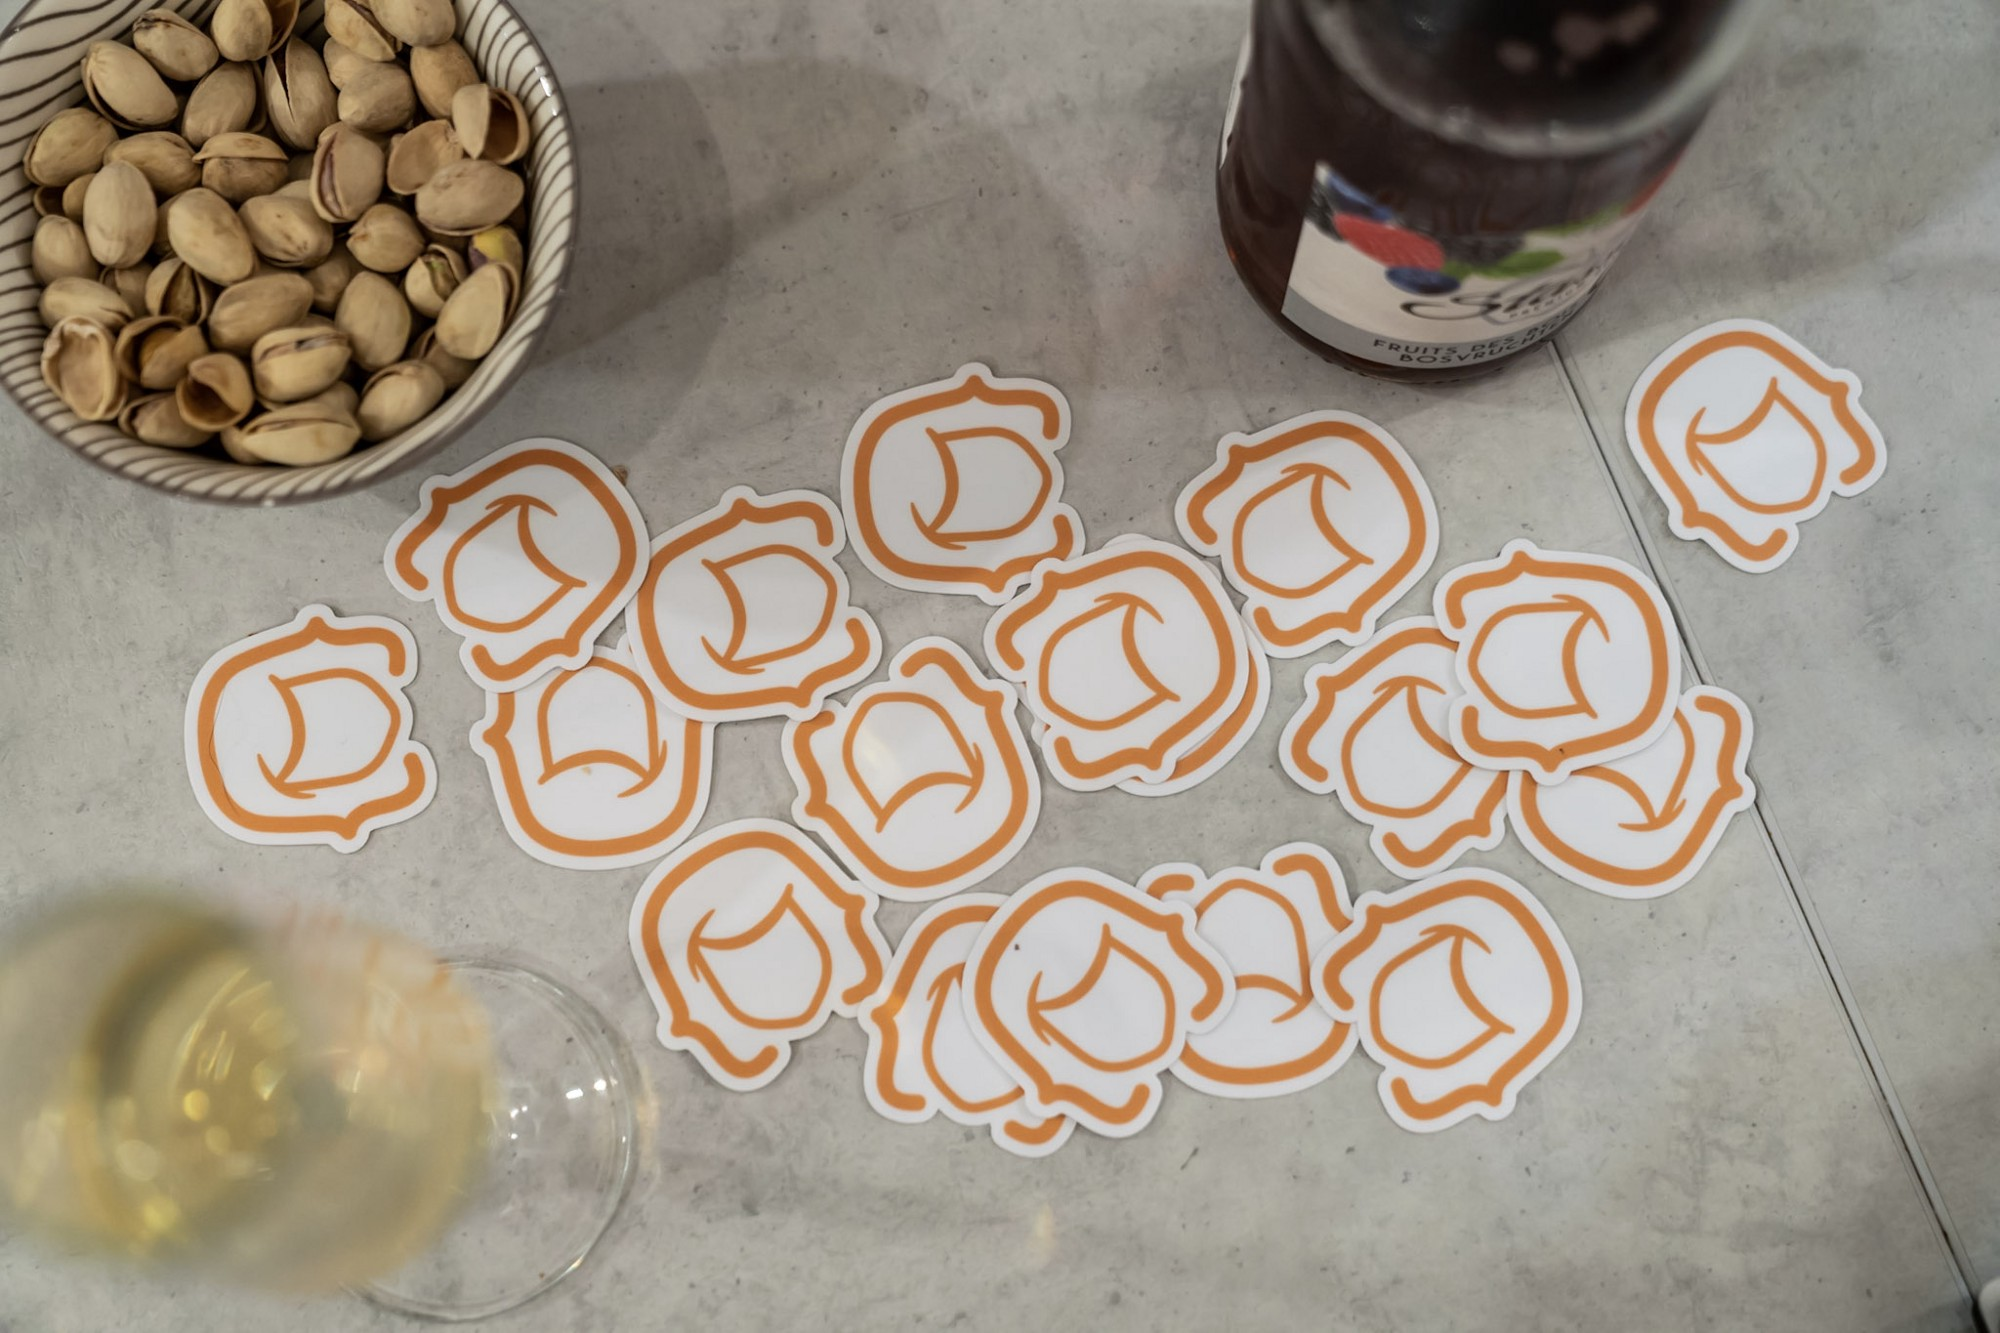 A topview of a festive table with women dot code be community stickers spread out on it